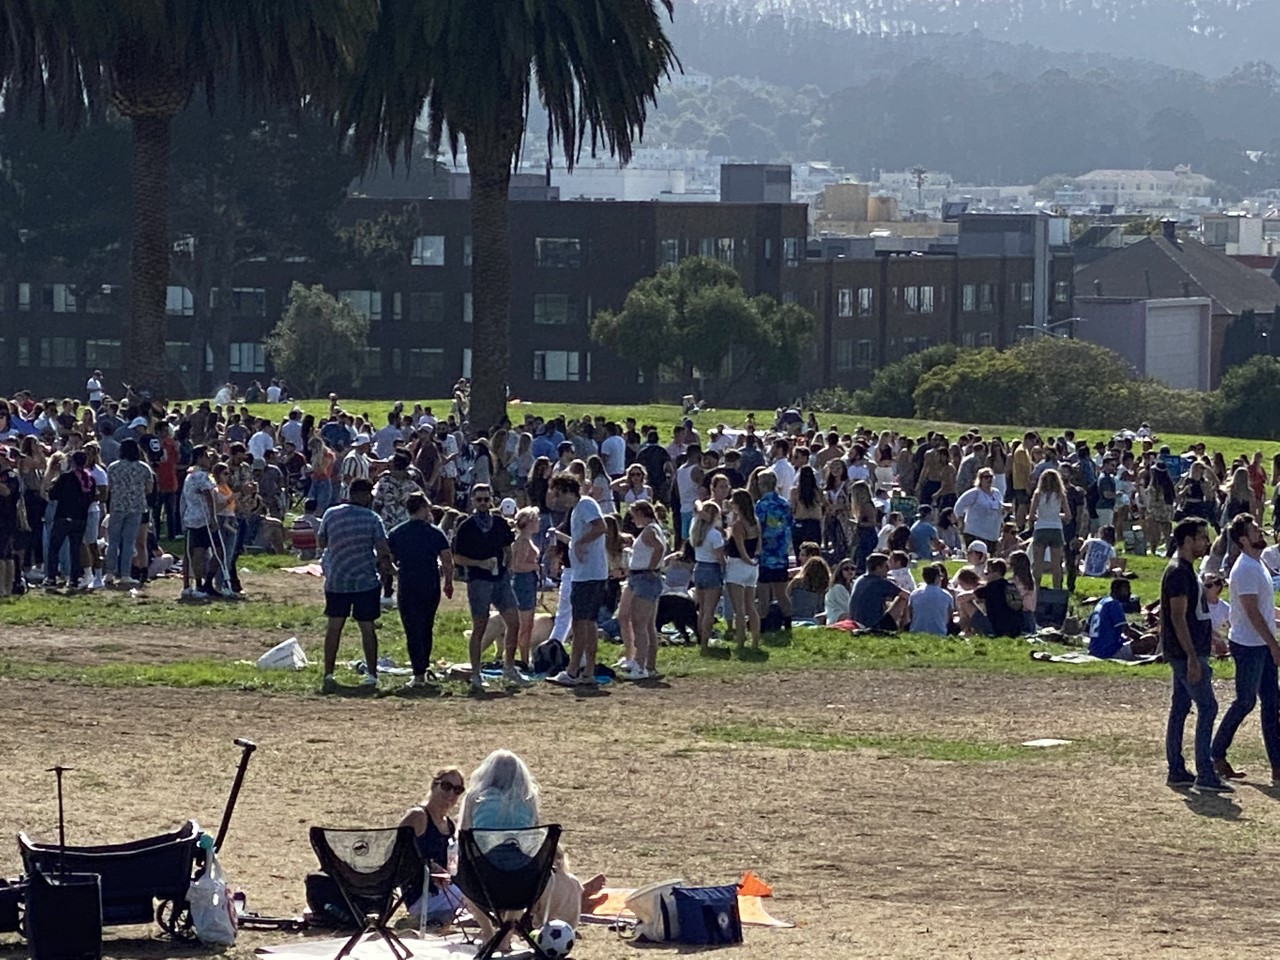 Large crowds gather at Fort Mason in San Francisco with little to no masks worn